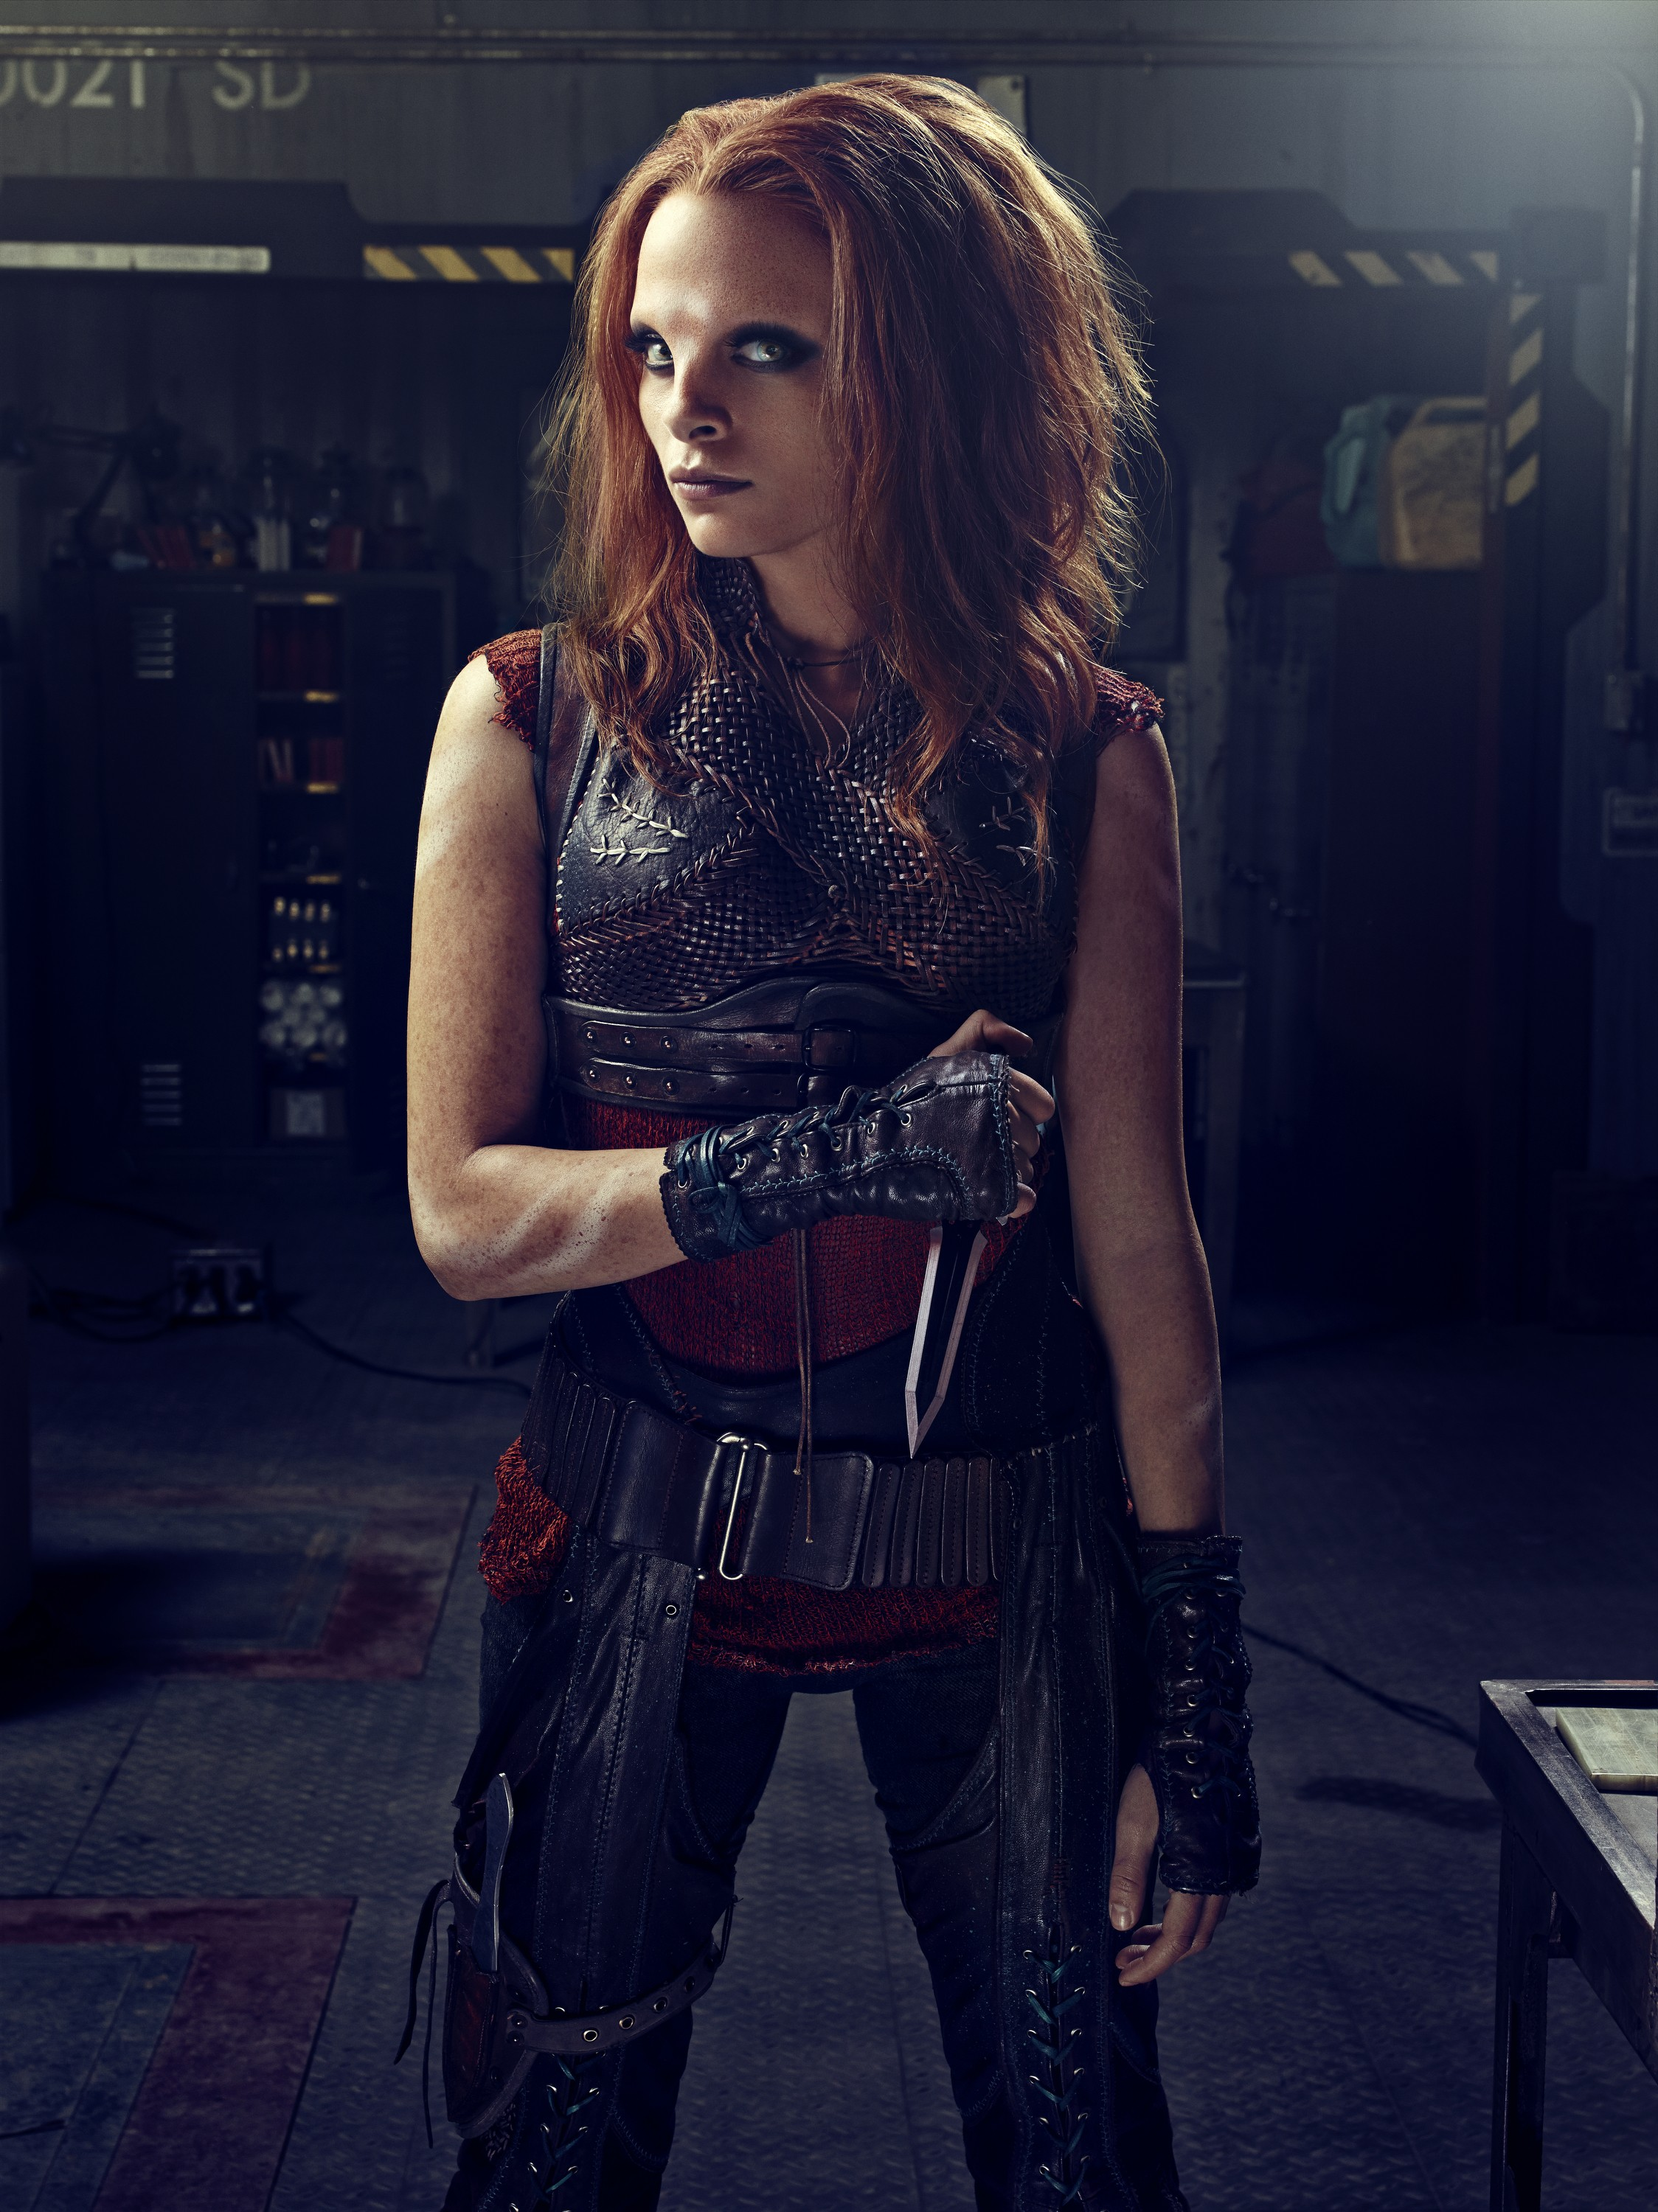 Defiance Season 2 - Stephanie Leonidas as Irisa Nyira  with a knife